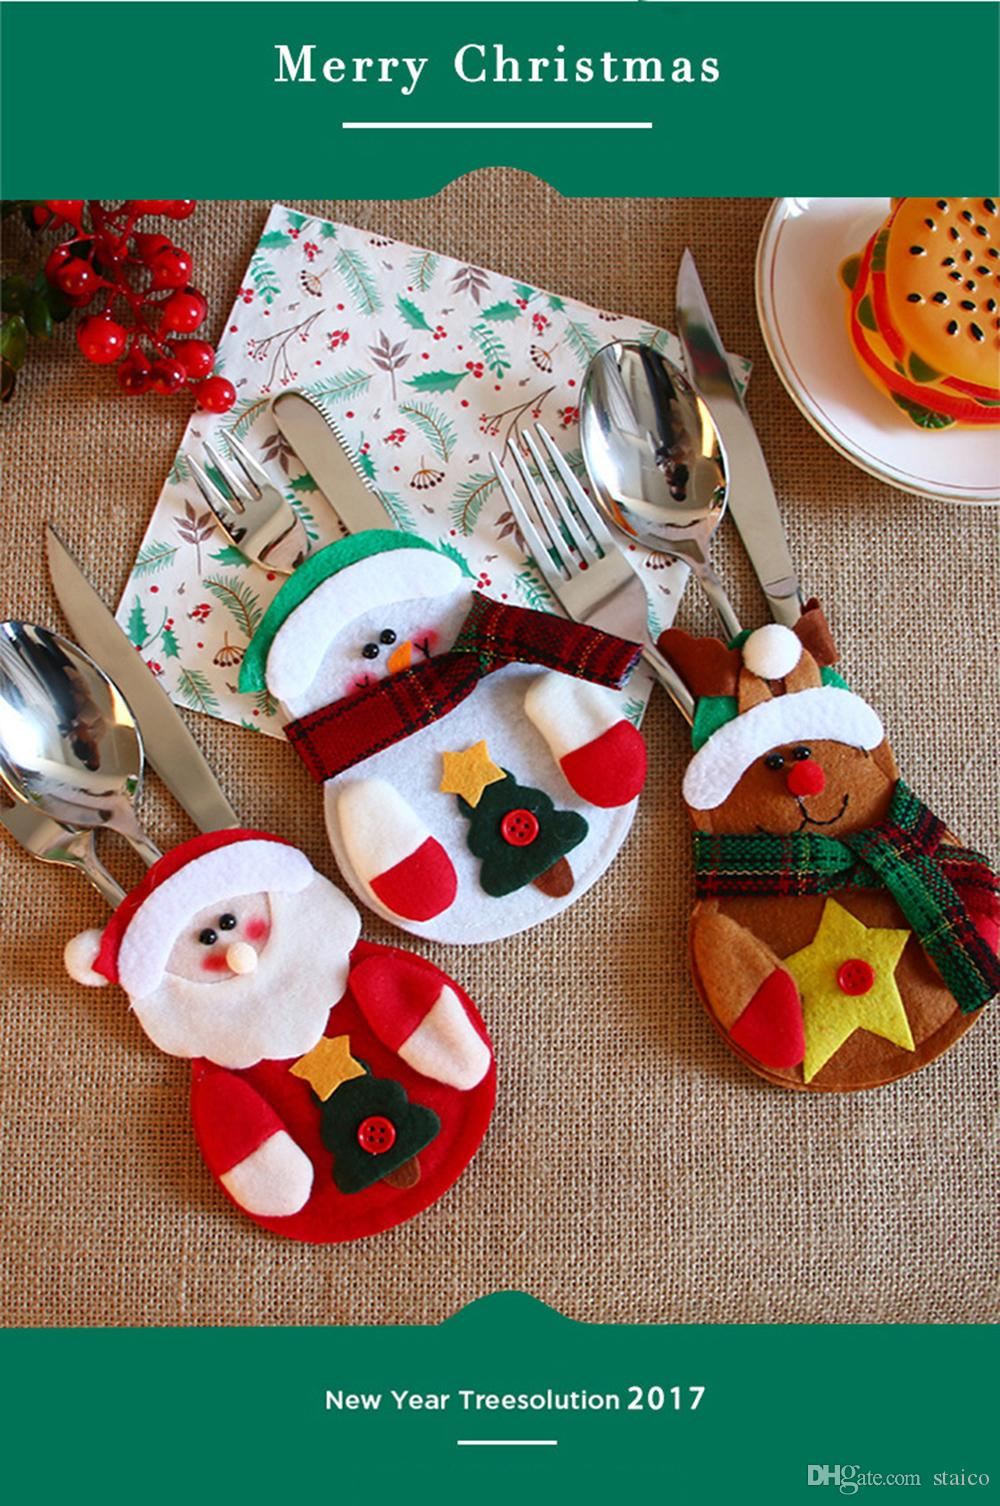 Christmas Decoration Supplies Restaurant Tableware Decorations Snowman Silverware Holders Knife And Fork Bags Xmas Decor MC11